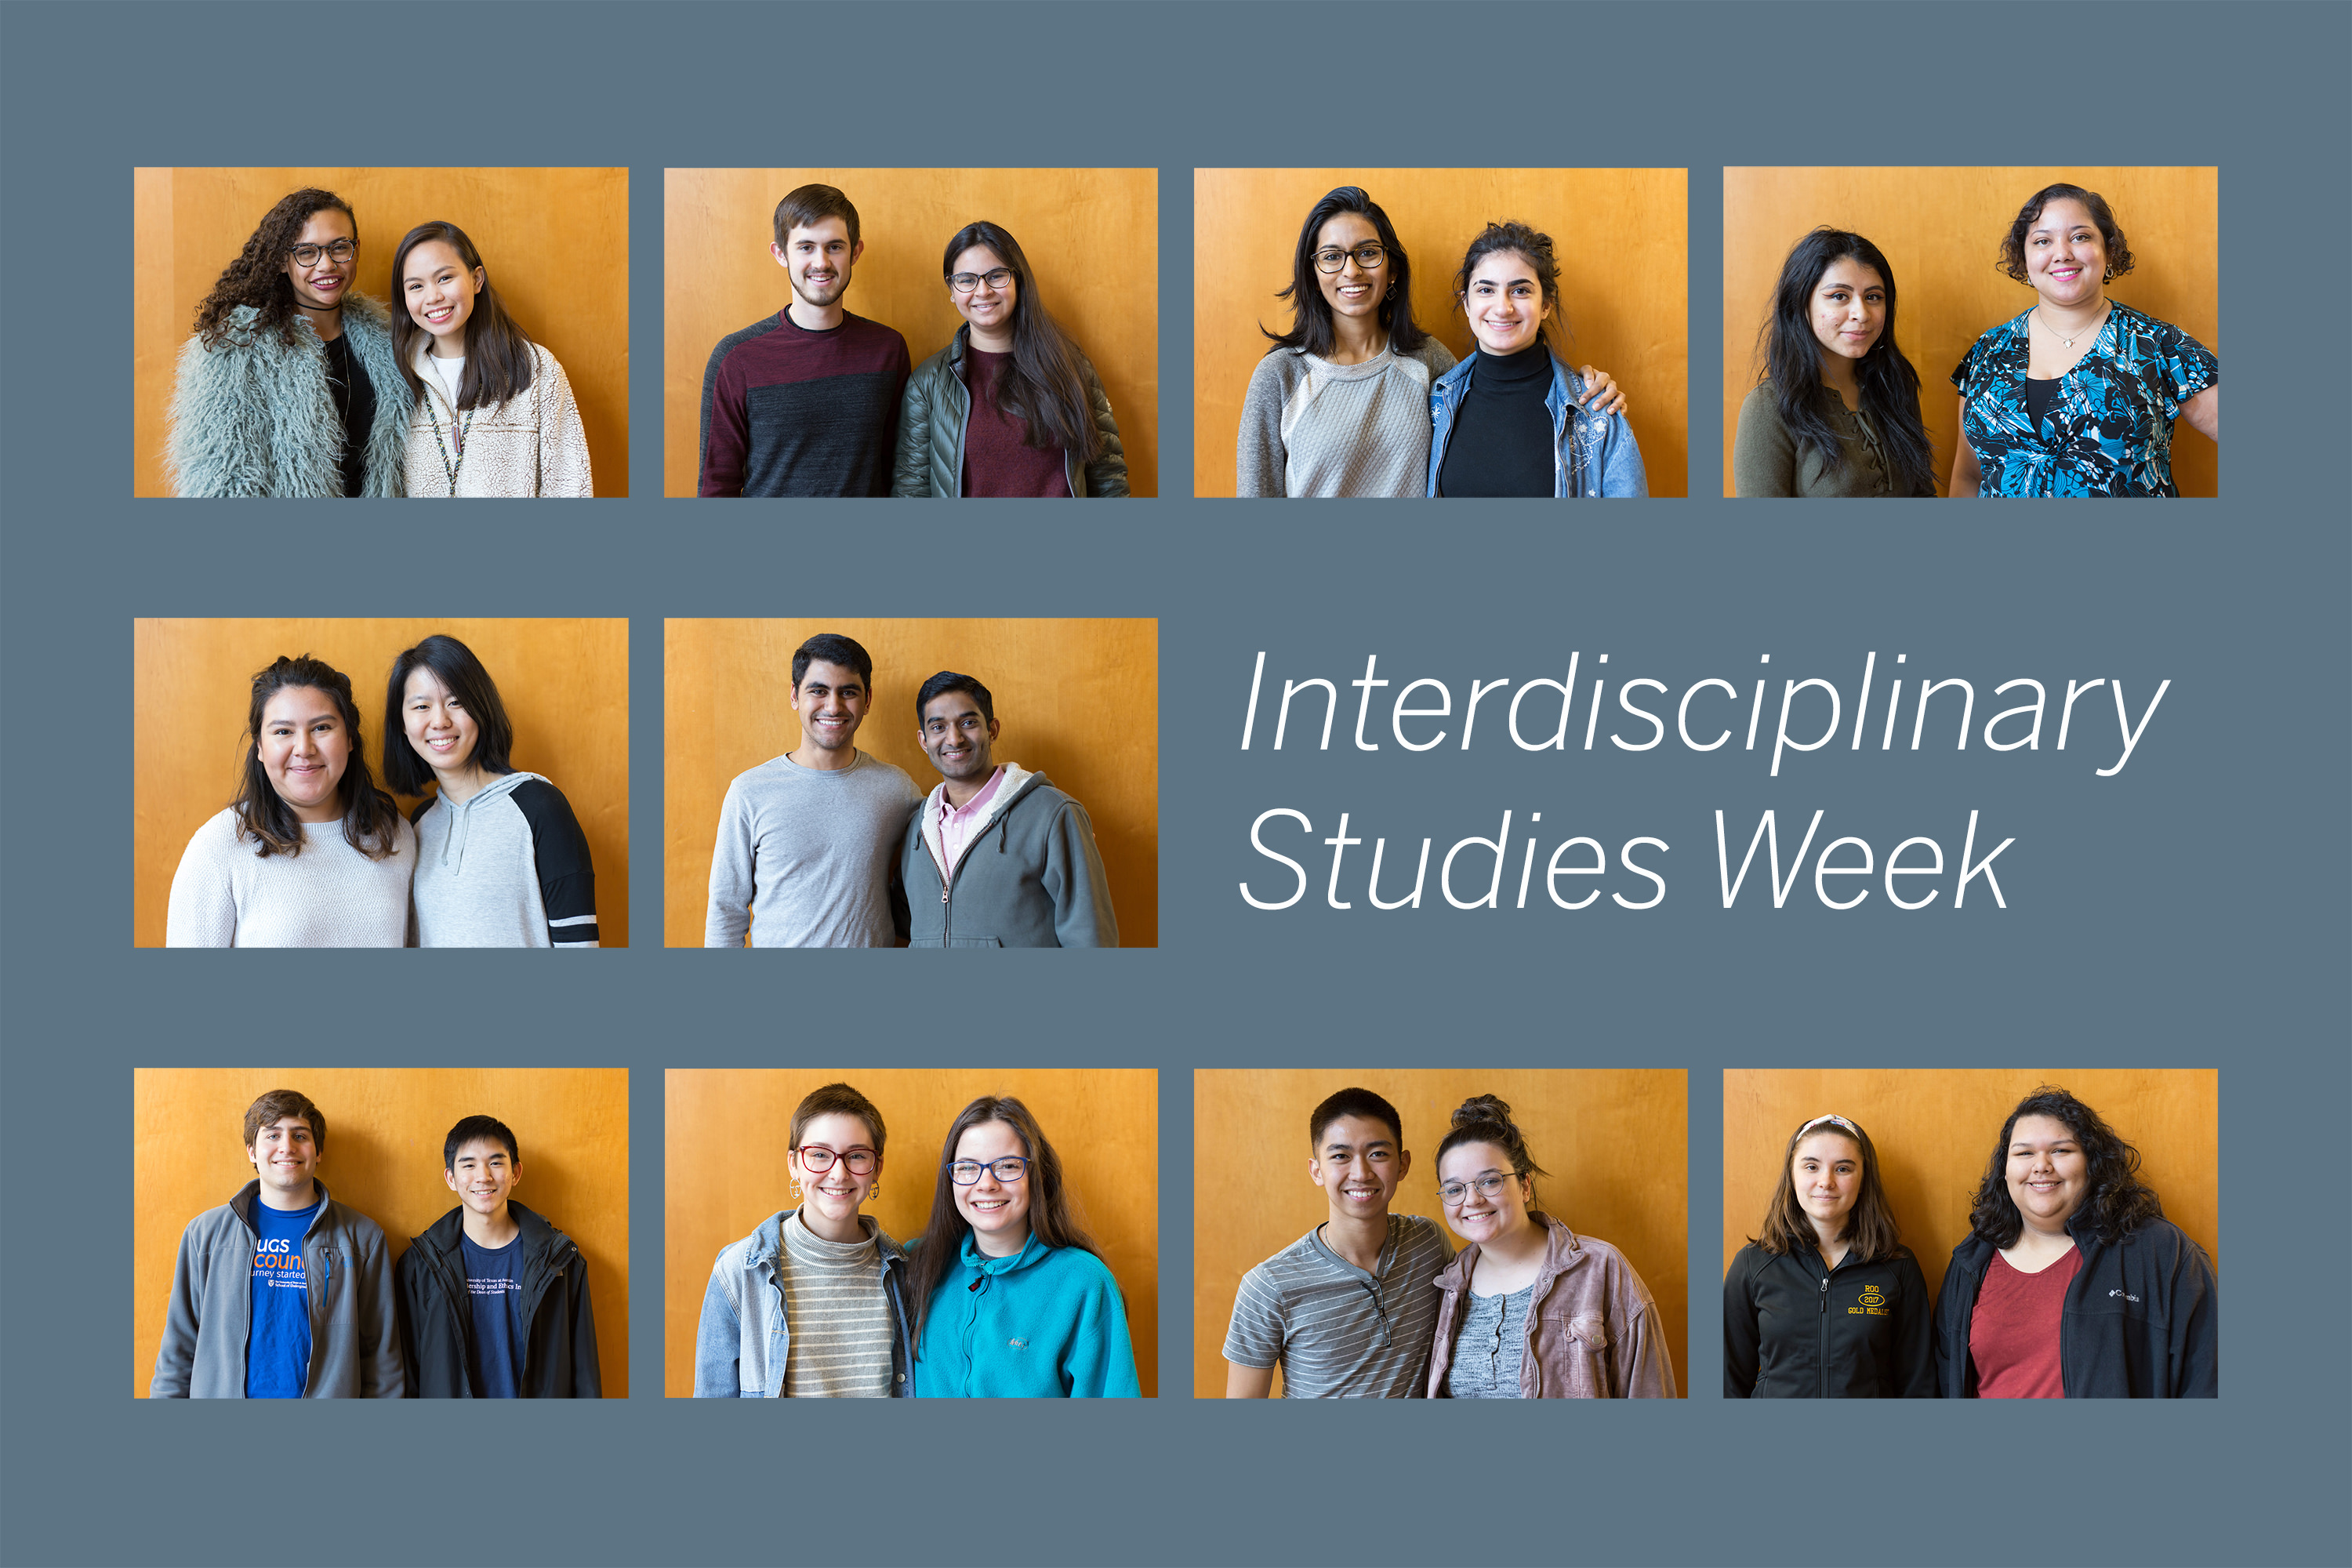 a selection of Interdisciplinary Studies Week participants